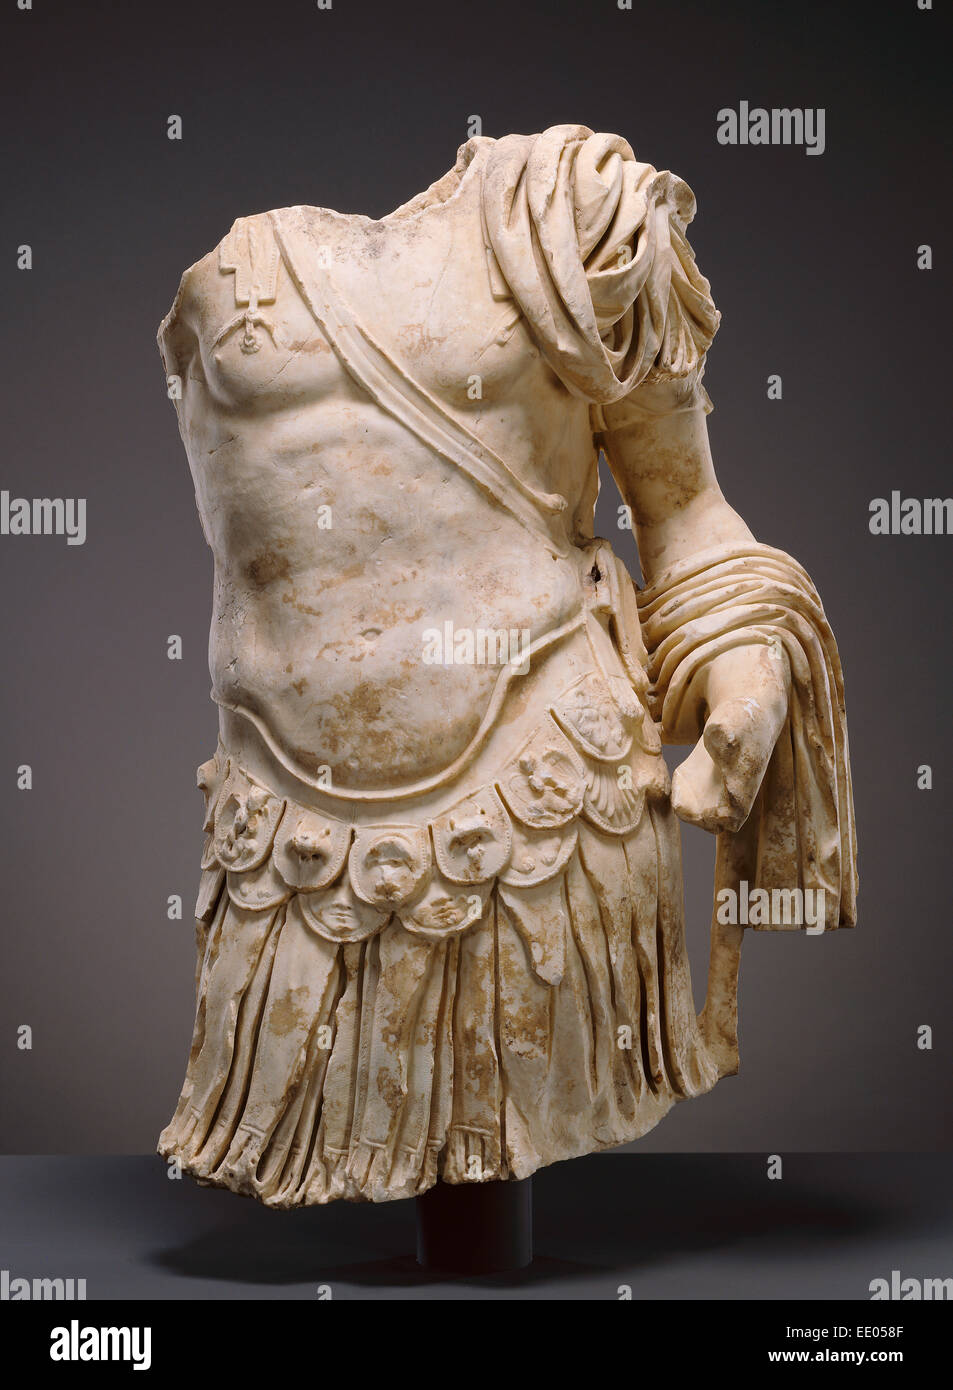 Torso of a Cuirassed Statue; Unknown; Italy, Europe; about 83 - 85; Marble - Stock Image